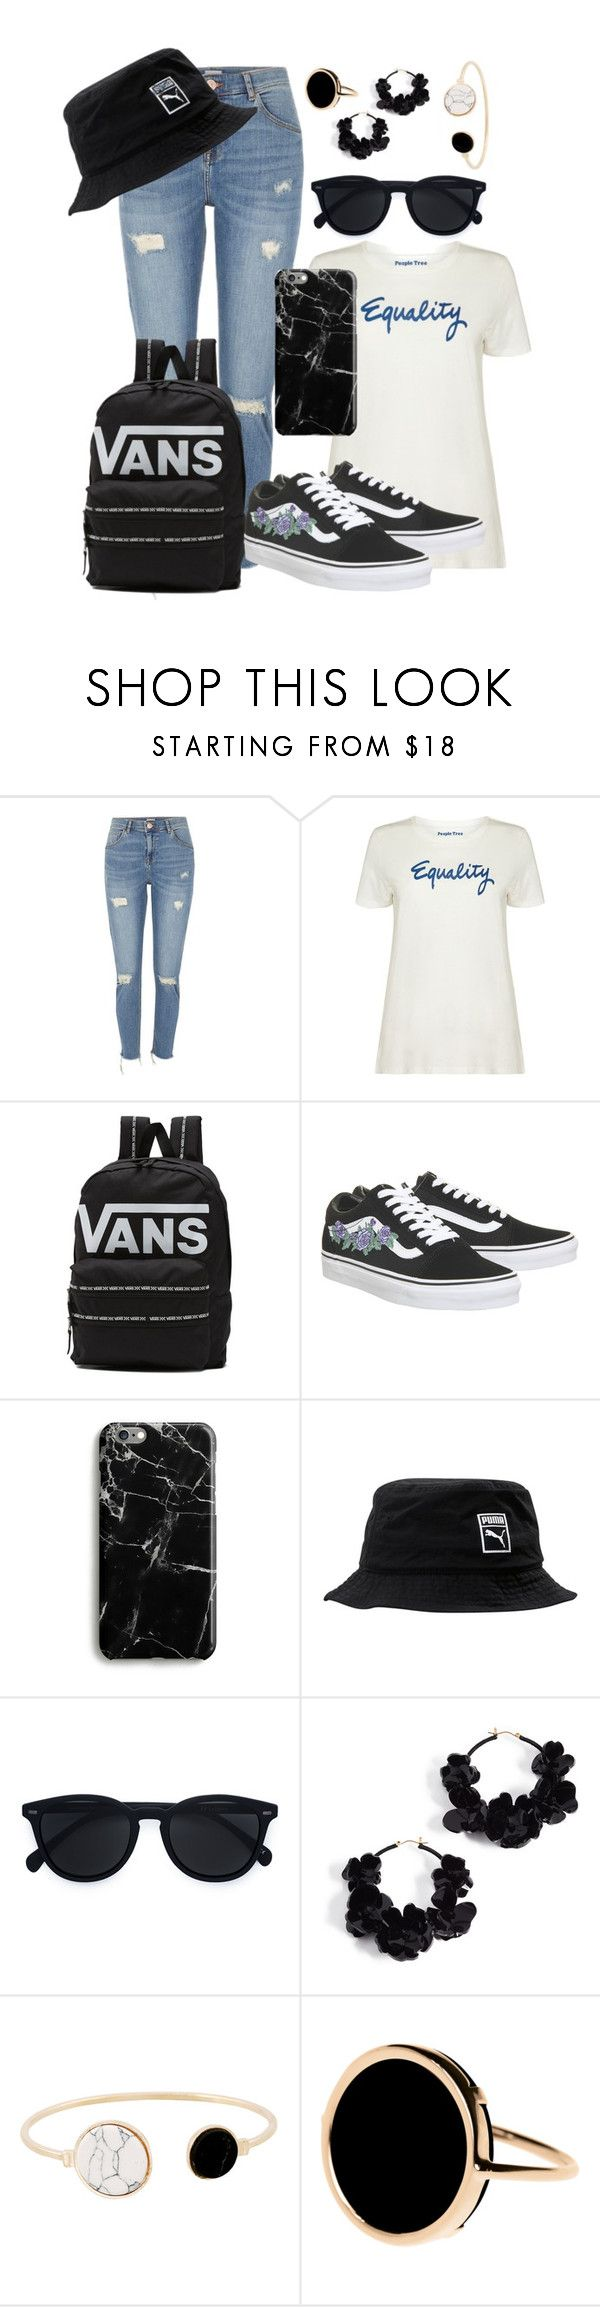 """""""It's all we ask for."""" by lol-meme-dank-qi ❤ liked on Polyvore featuring River Island, People Tree, Vans, Samsung, Puma, Le Specs, Oscar de la Renta, Ginette NY, womensHistoryMonth and pressforprogress"""